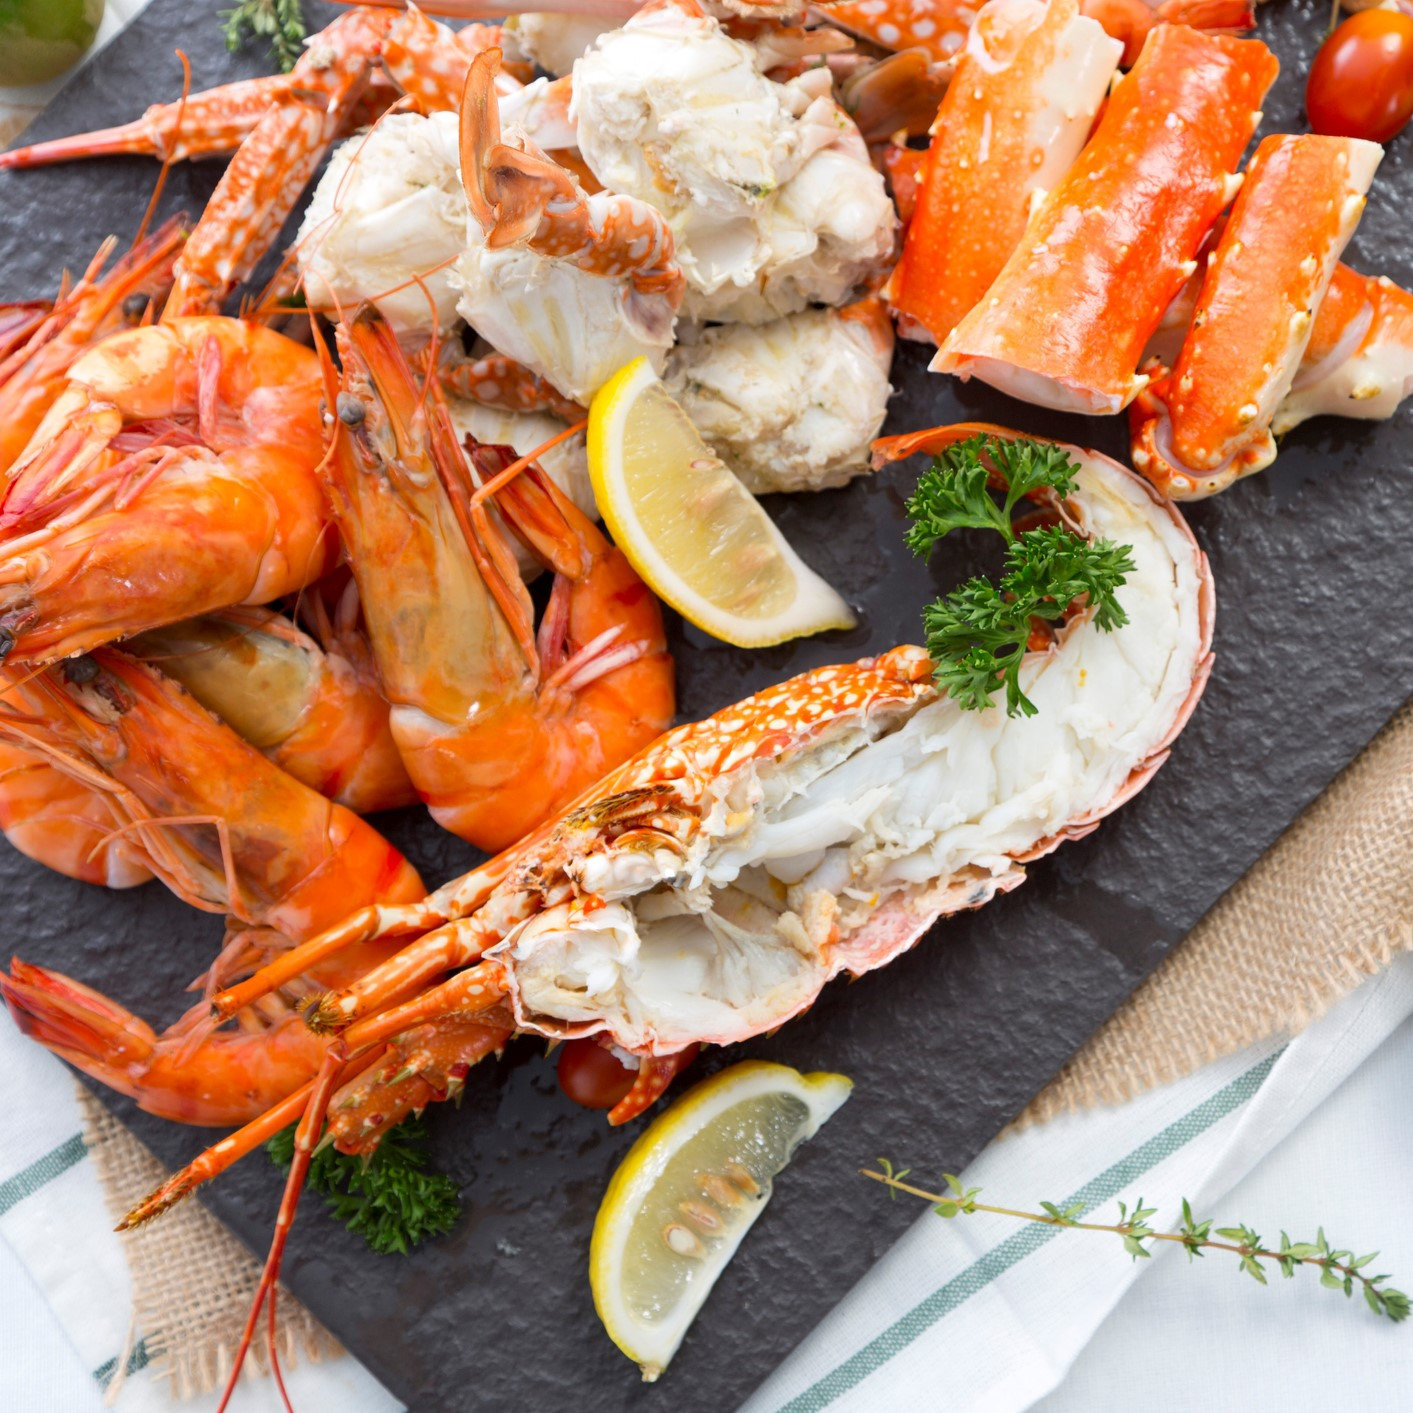 Boiled prawn and lobster on stone plate